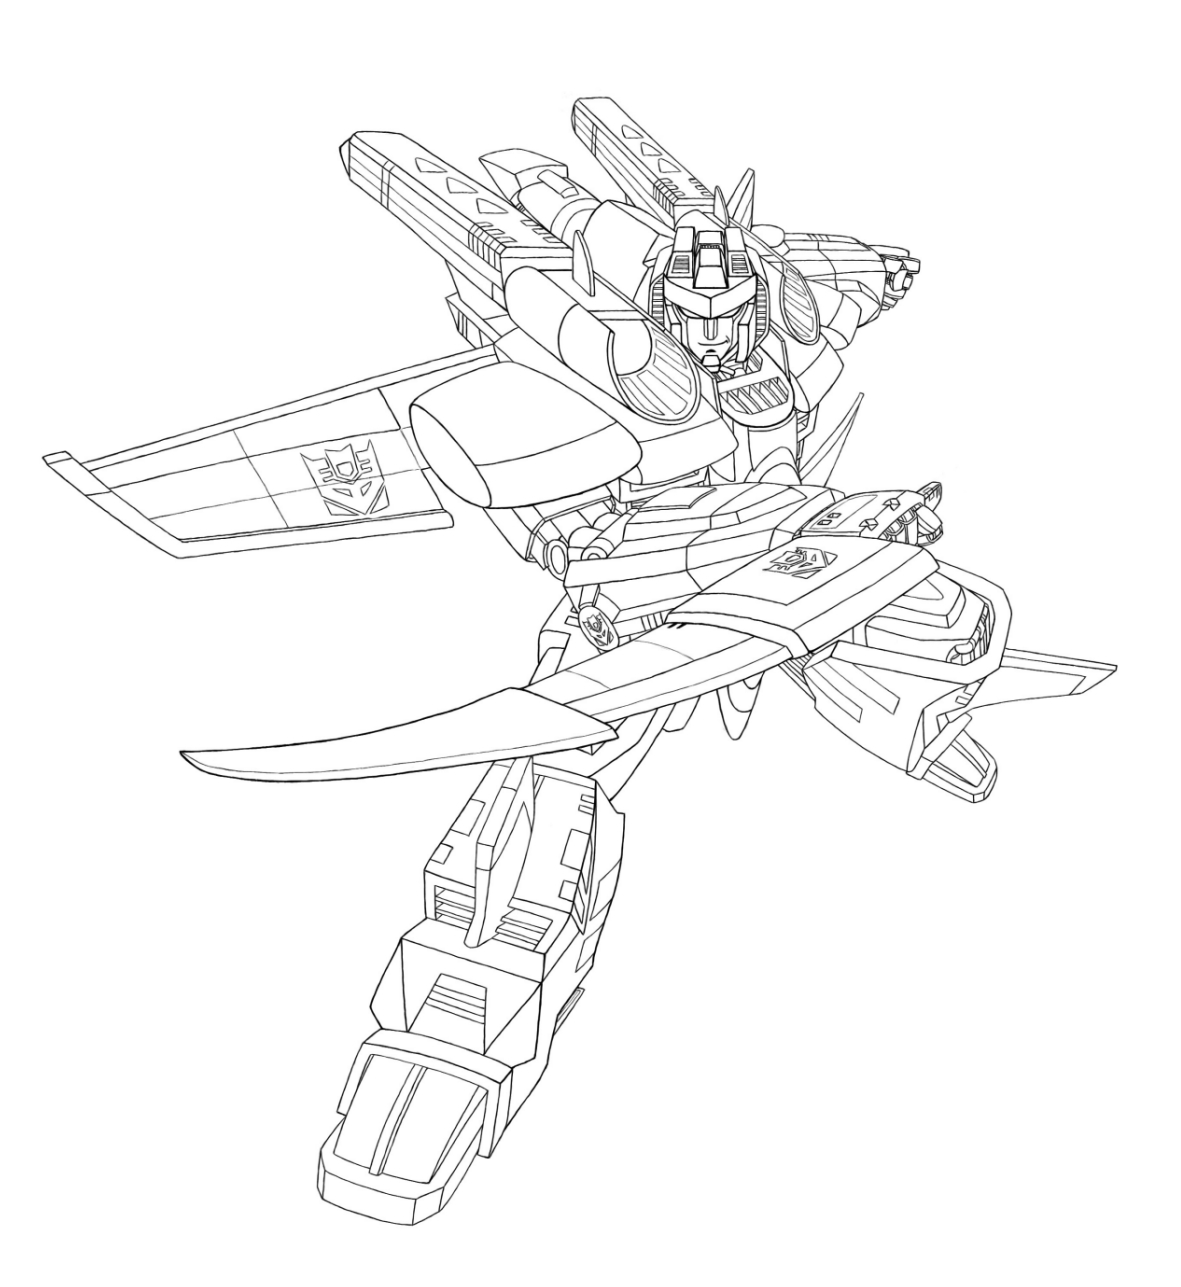 Free printable coloring pages rescue bots - Rescue Bots Coloring Page Chase Rescue Bots Heatwave Vehicle Gallery